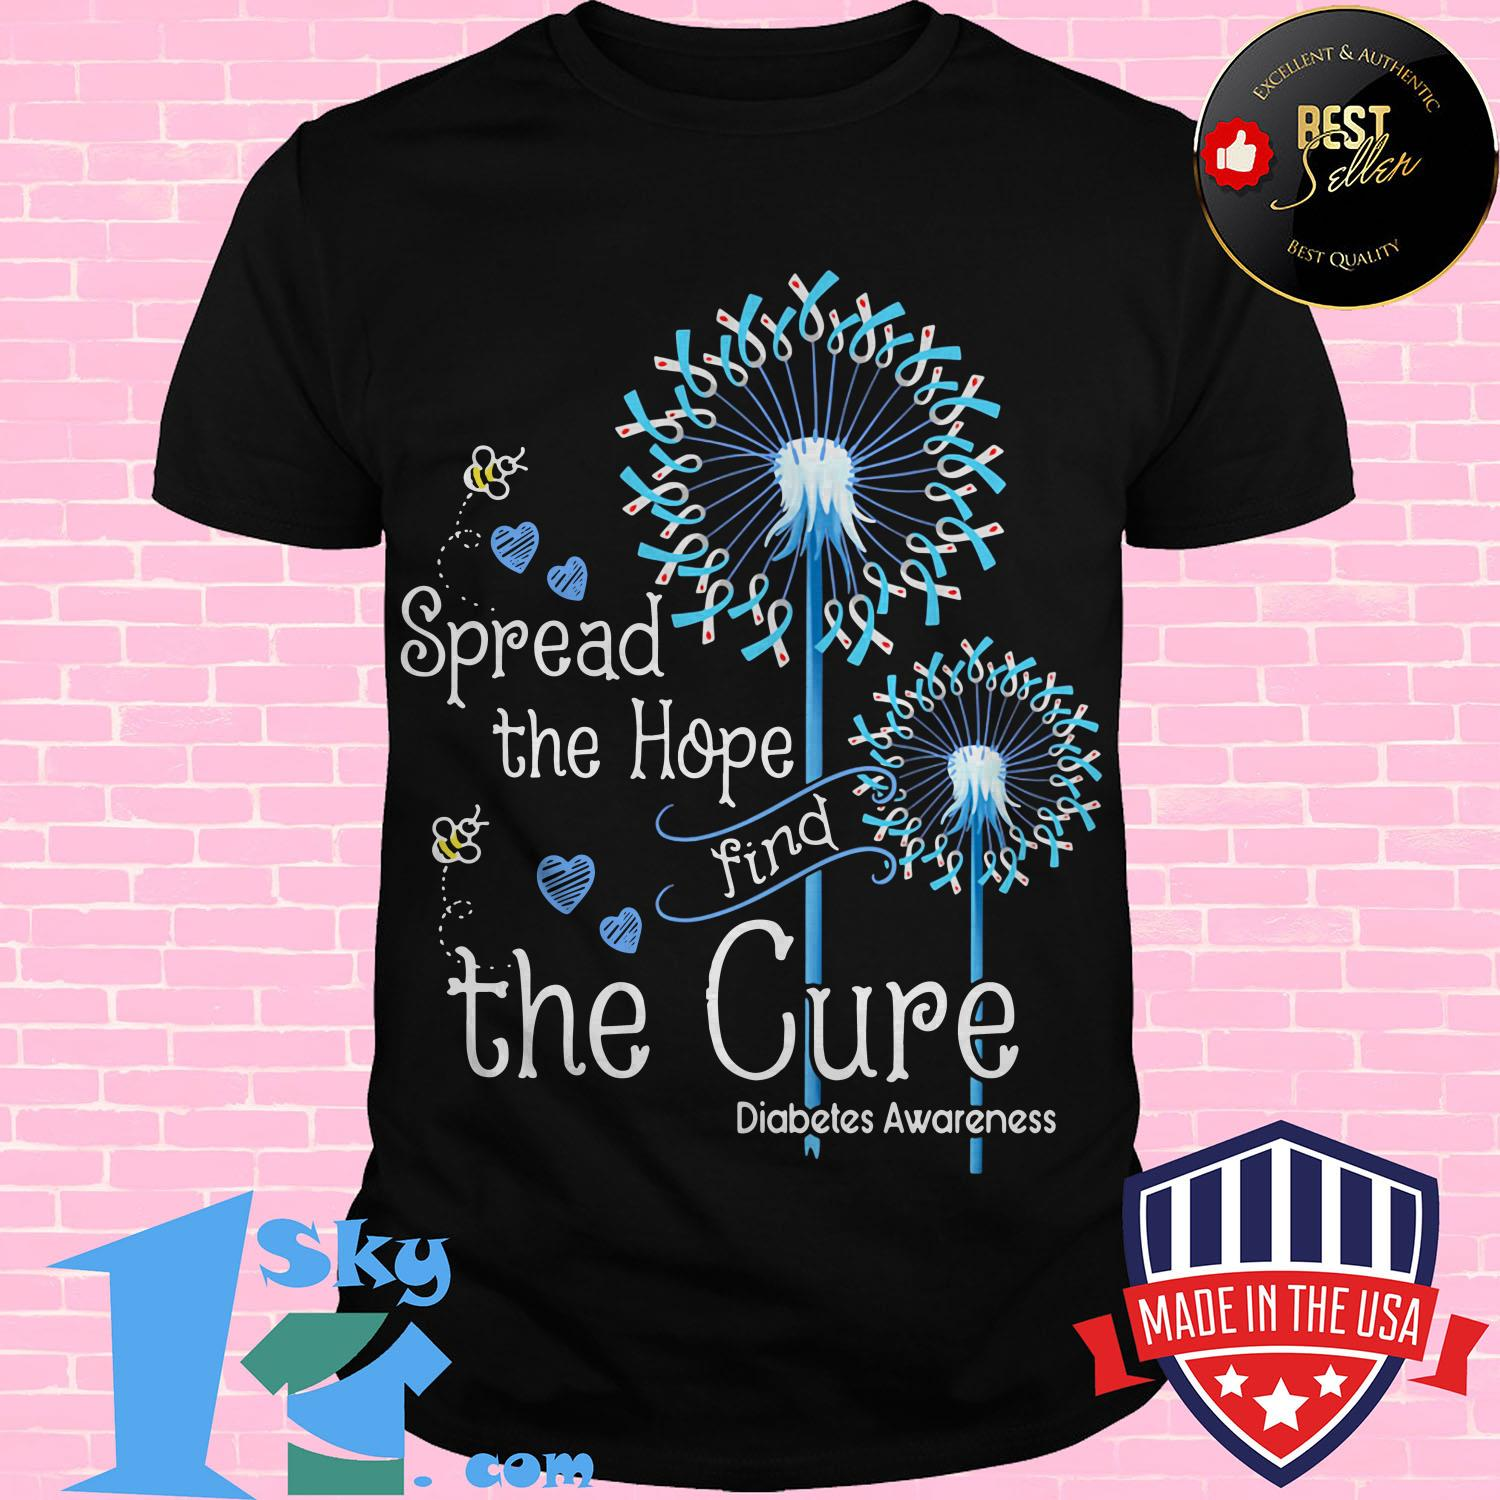 pread the hope find the cure diabetes awareness dandelion ladies tee - Spread the hope find the cure diabetes awareness dandelion shirt